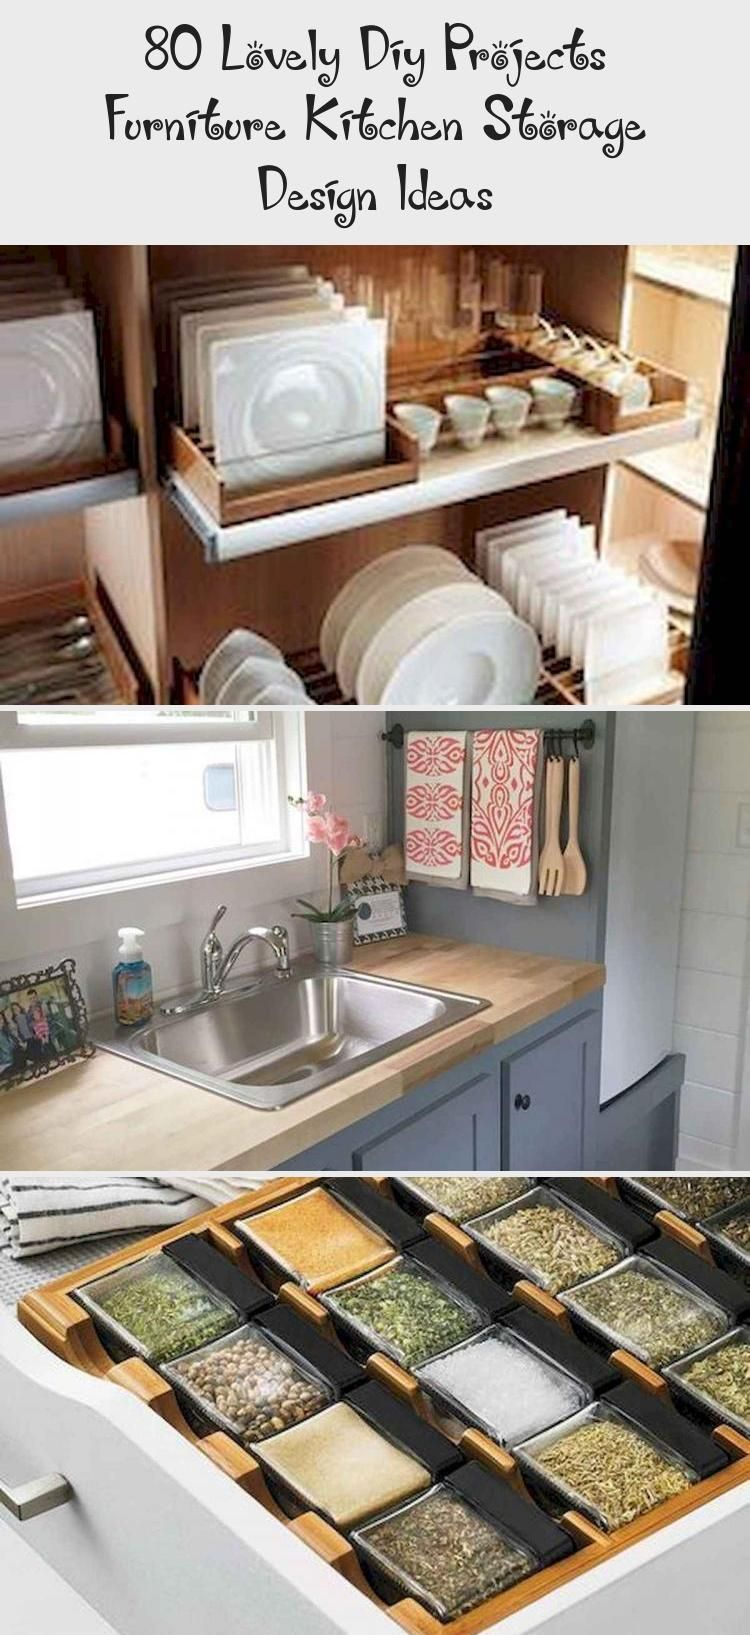 6 Lovely Diy Projects Furniture Kitchen Storage Design Ideas in